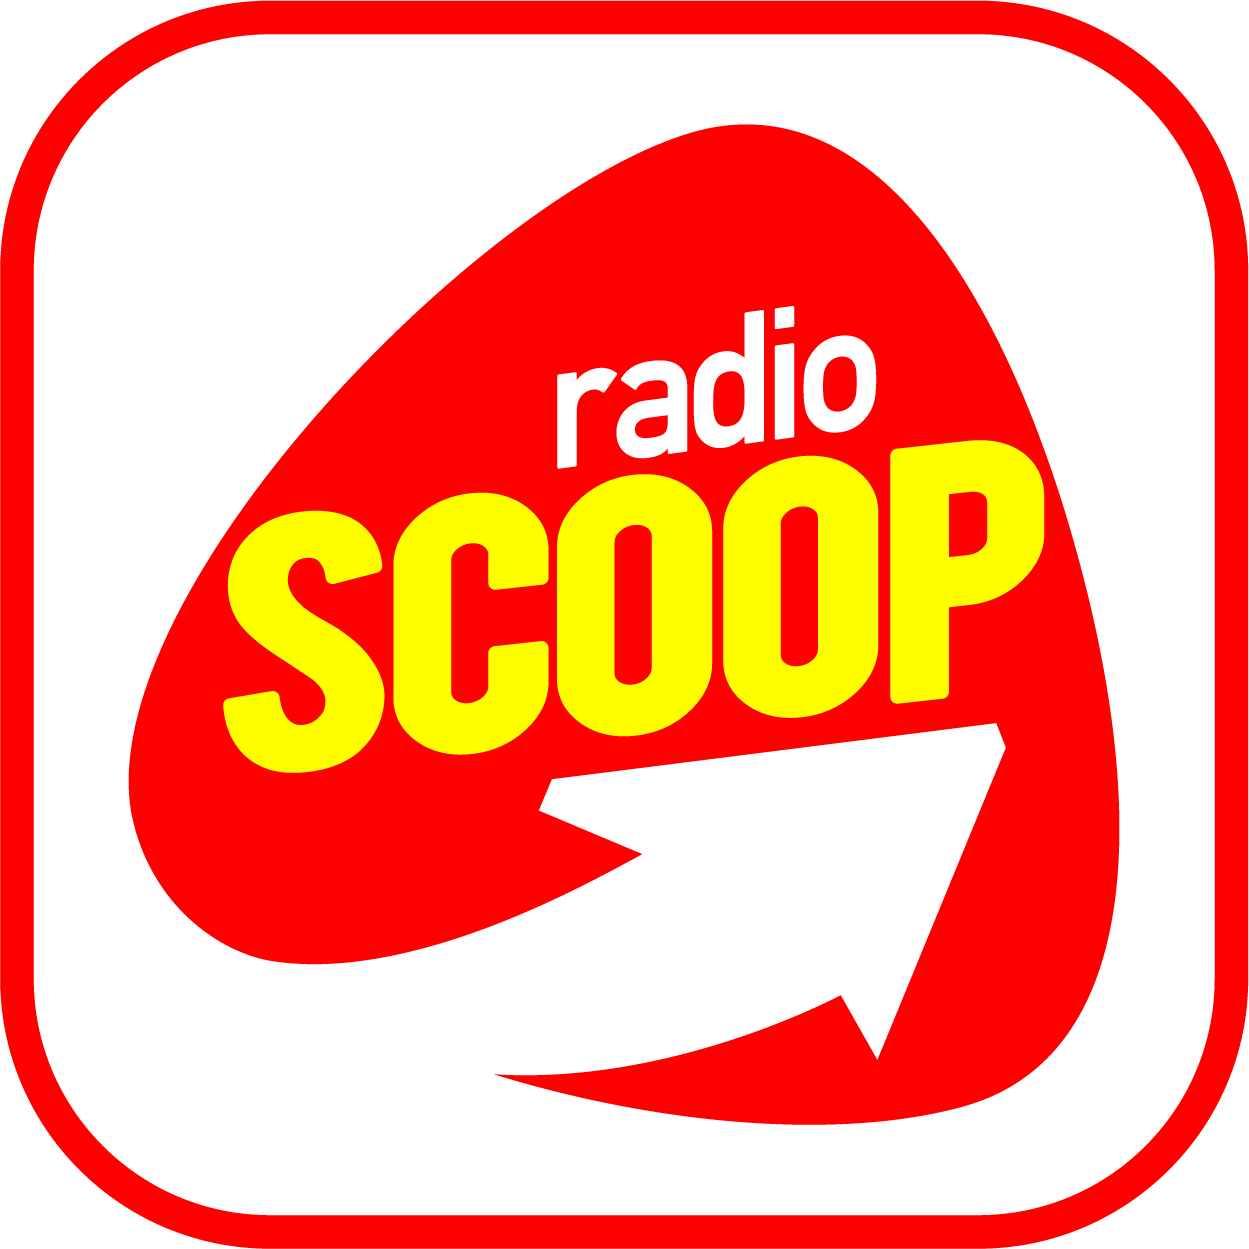 radio_scoop